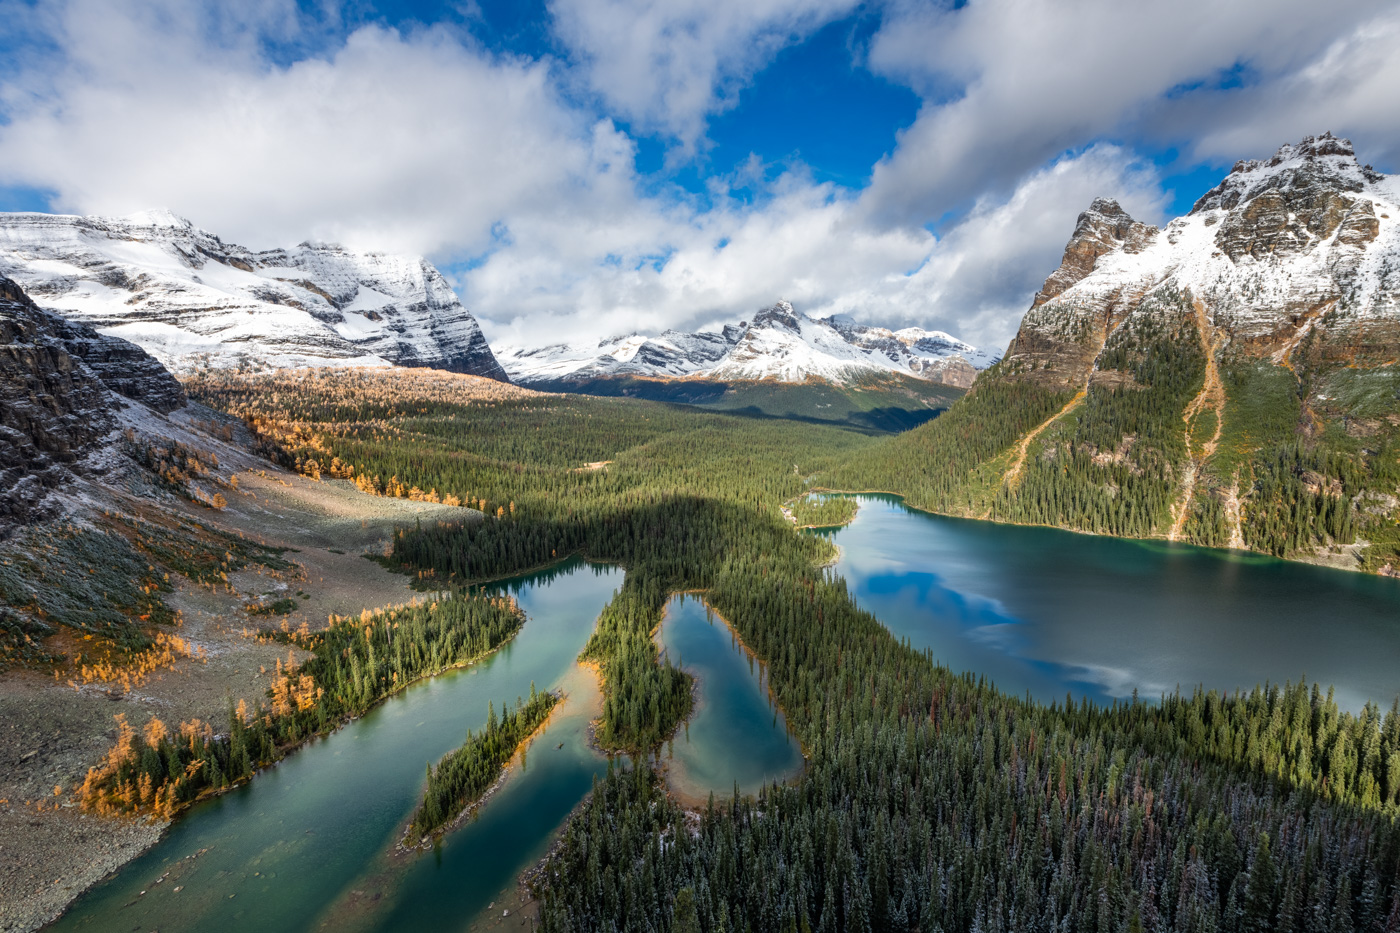 Lake O'hara and Mary Lakes during Larch Season in Yoho National Park from Opabin Prospect